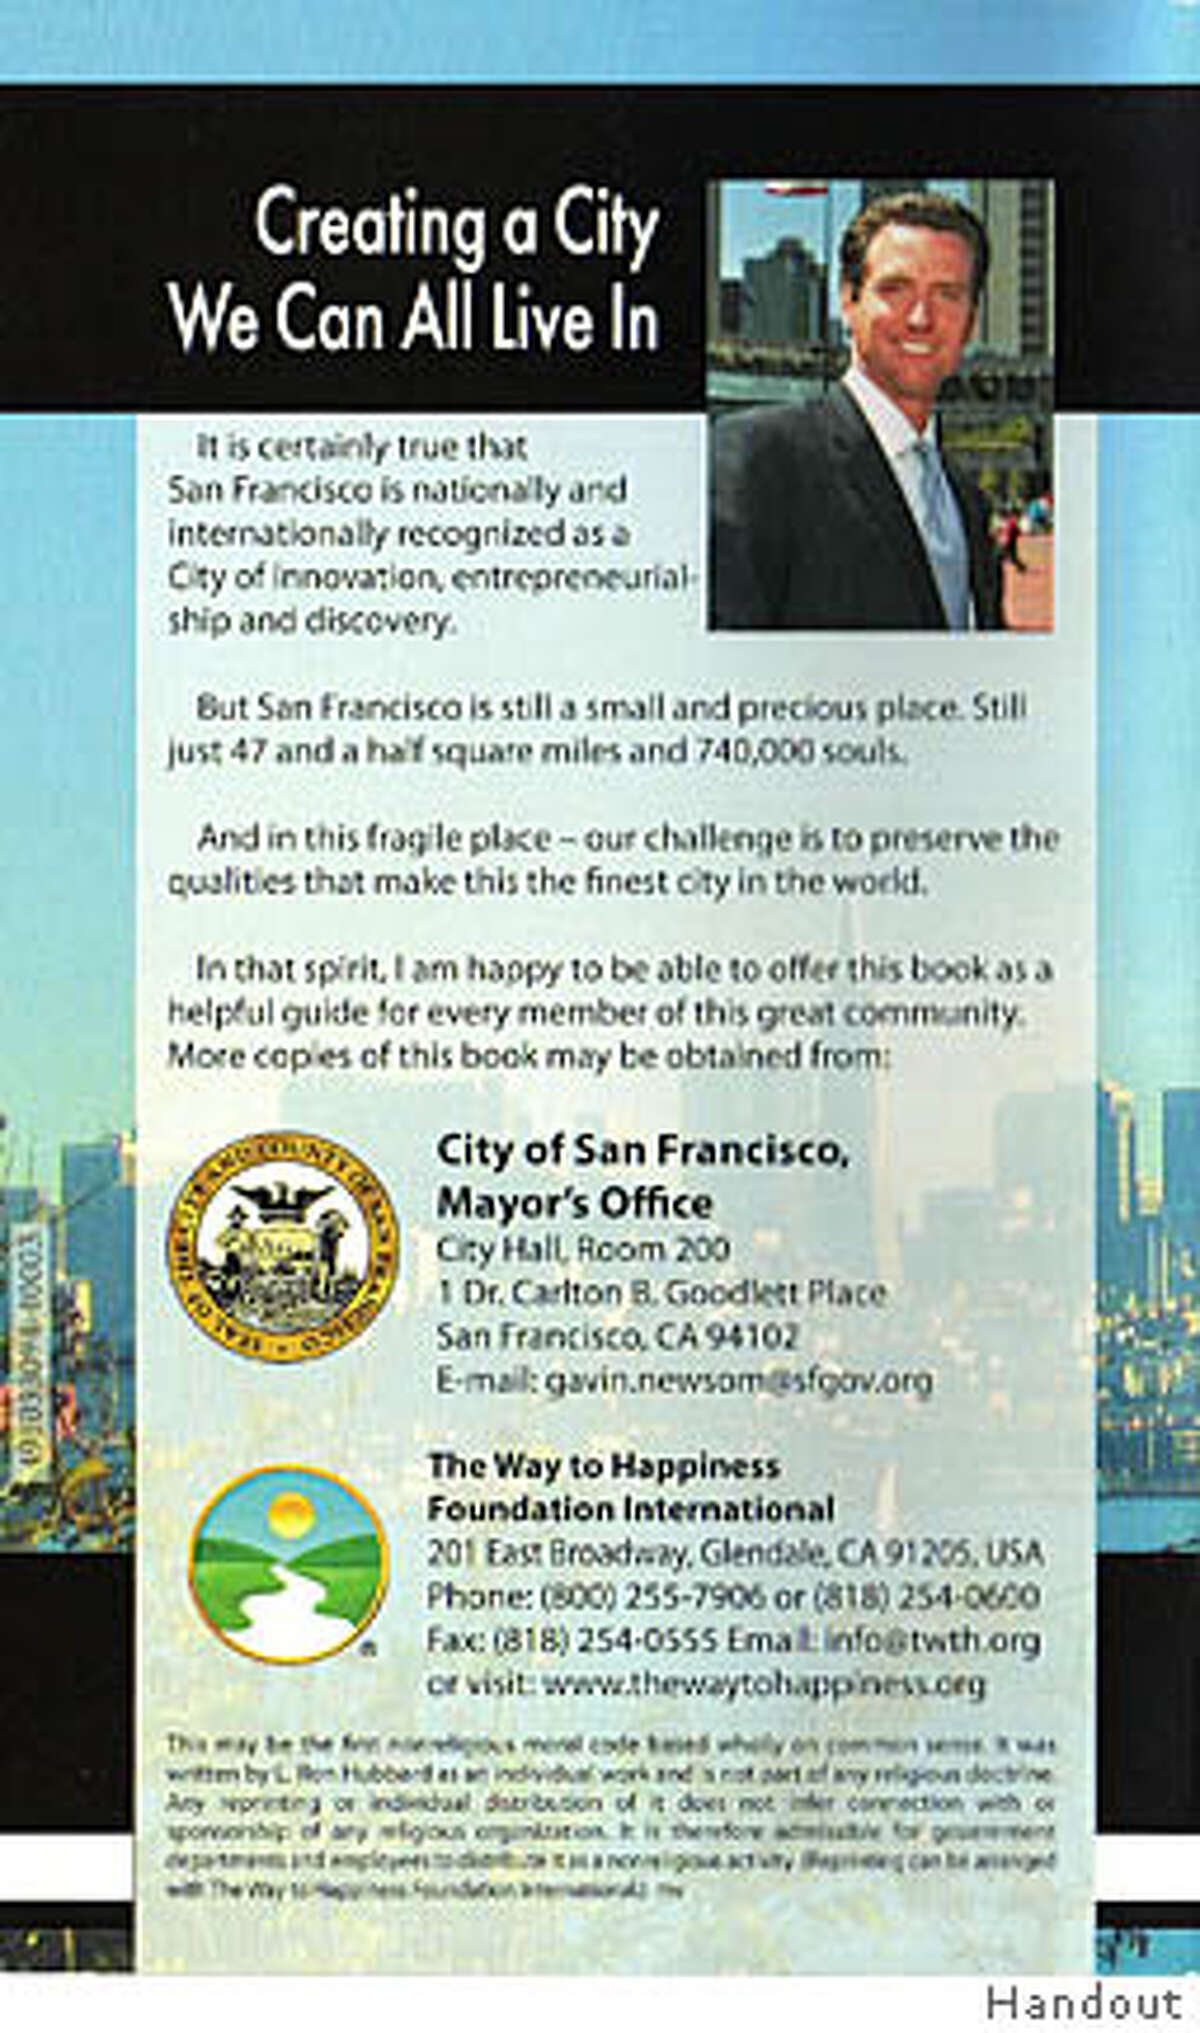 San Francisco Mayor Gavin Newsom's smiling picture and a fictitious letter of endorsement from him are featured on a scientology booklet called